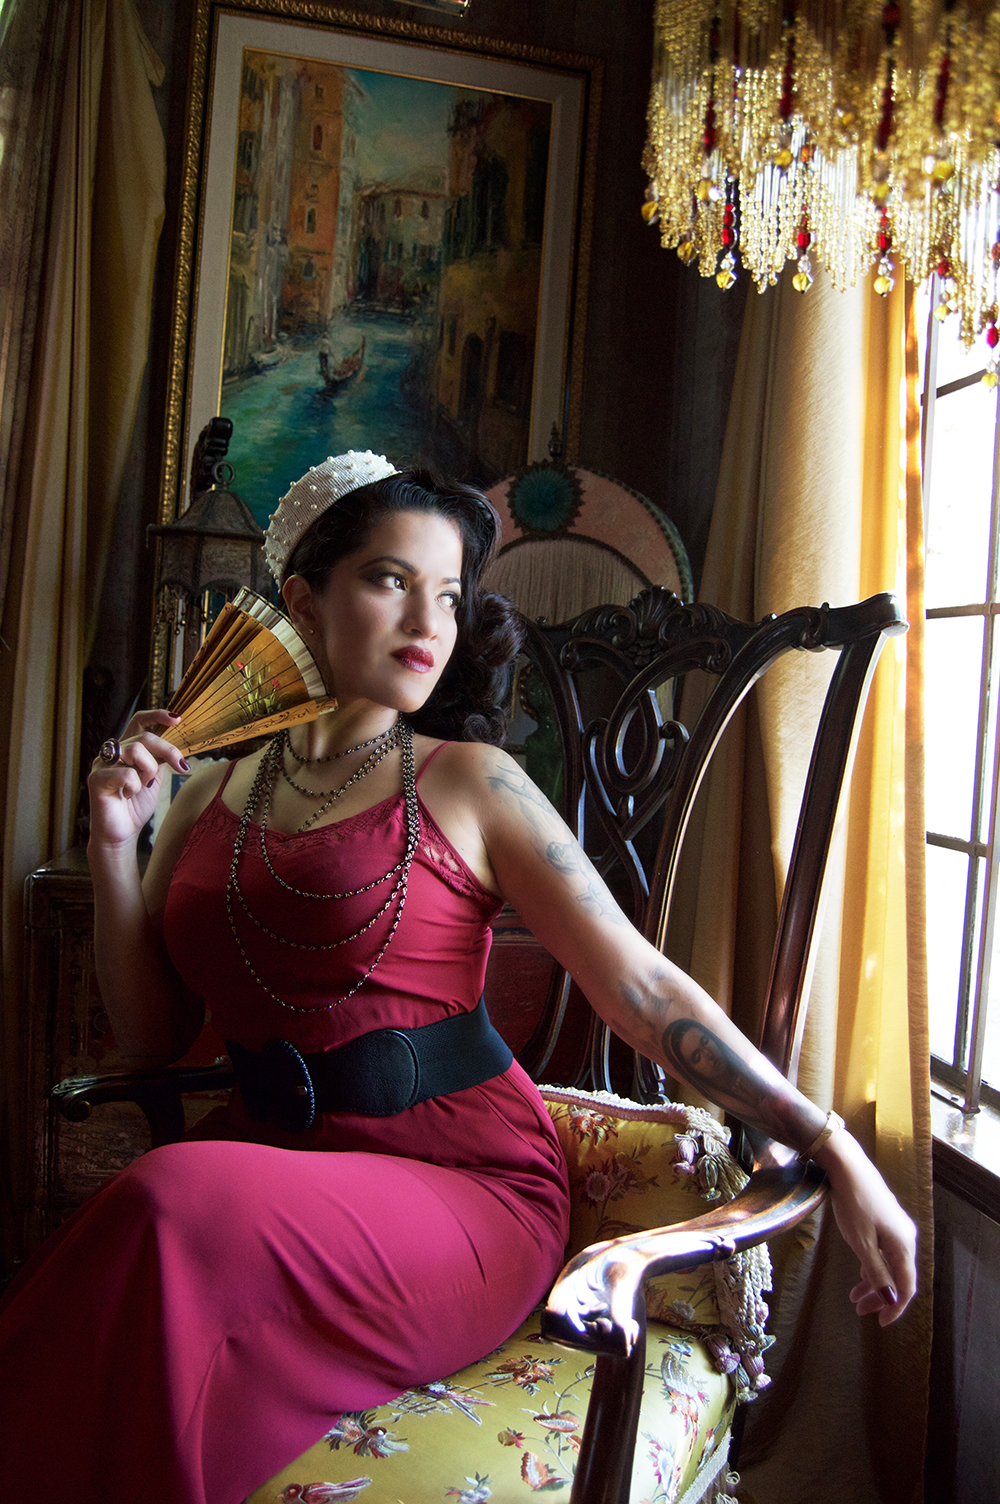 The Darla Pillbox Hat Fit for a Queen!